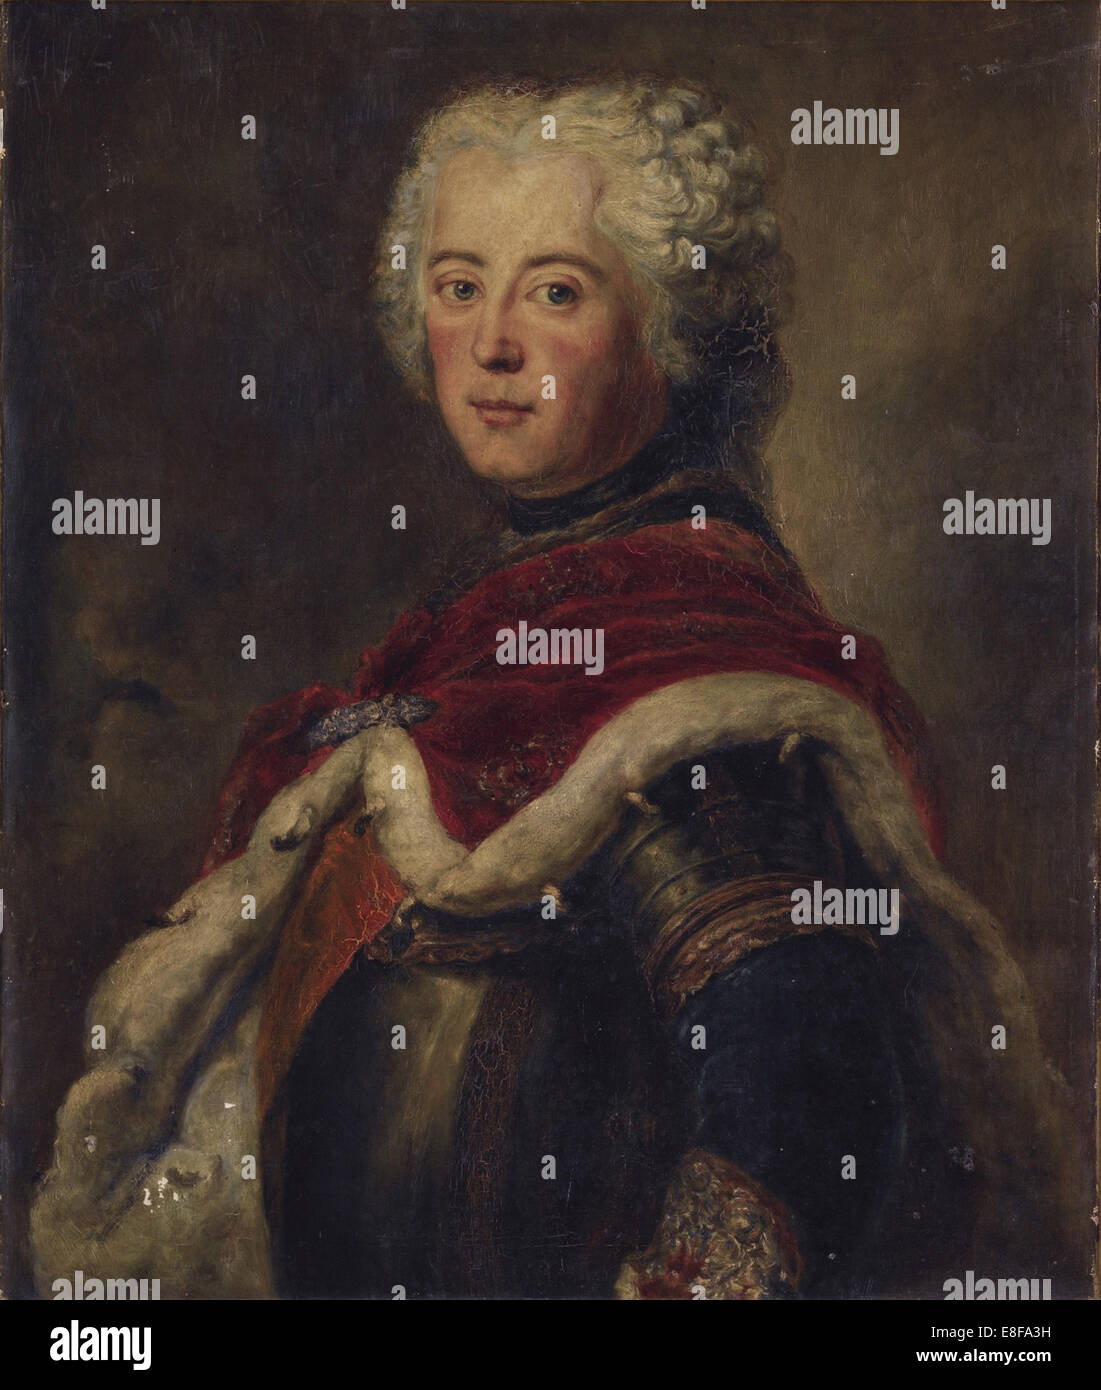 Portrait of Frederick II of Prussia (1712?1786). Artist: Pesne, Antoine (1683-1757) - Stock Image